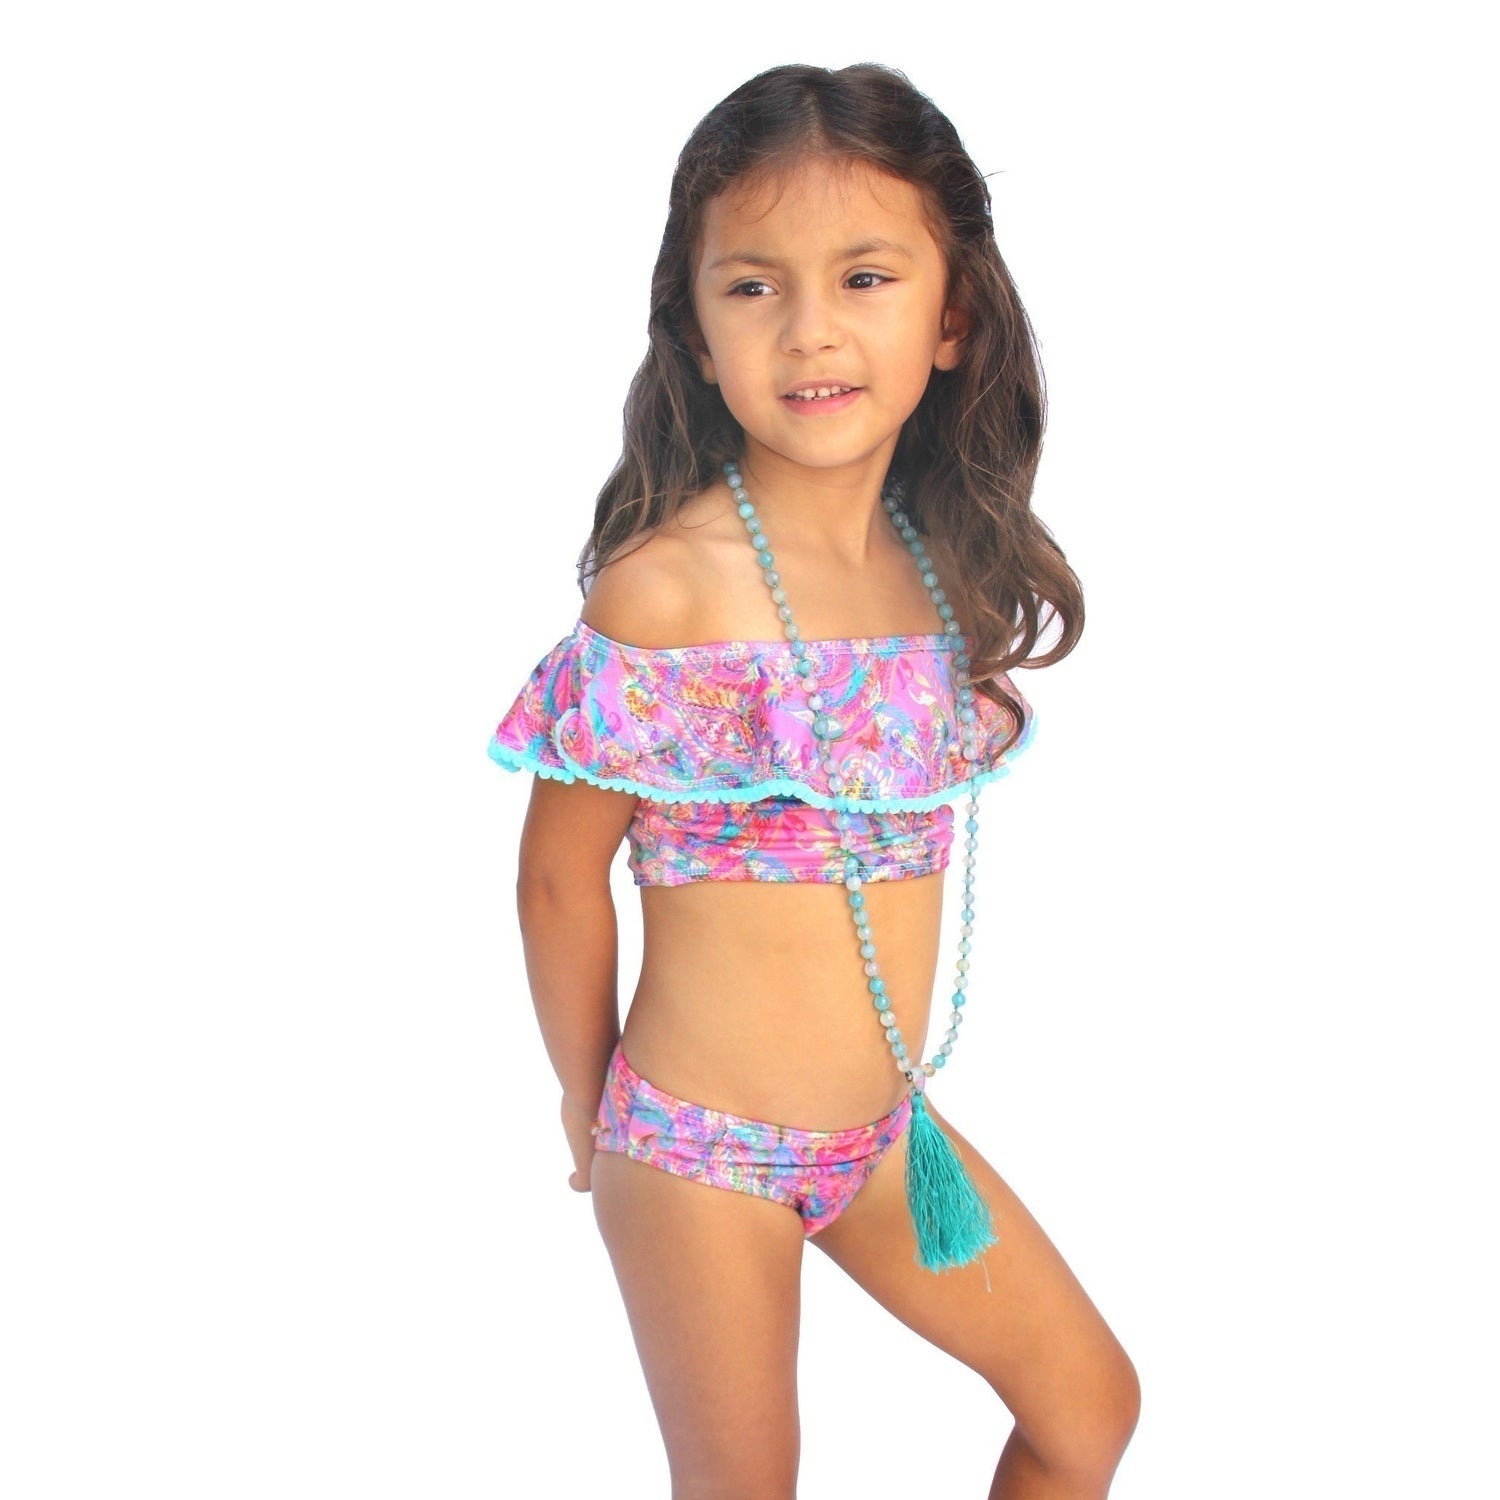 535009b3719e Buy Pink Girls' Swimwear Online at Overstock | Our Best Girls' Clothing  Deals